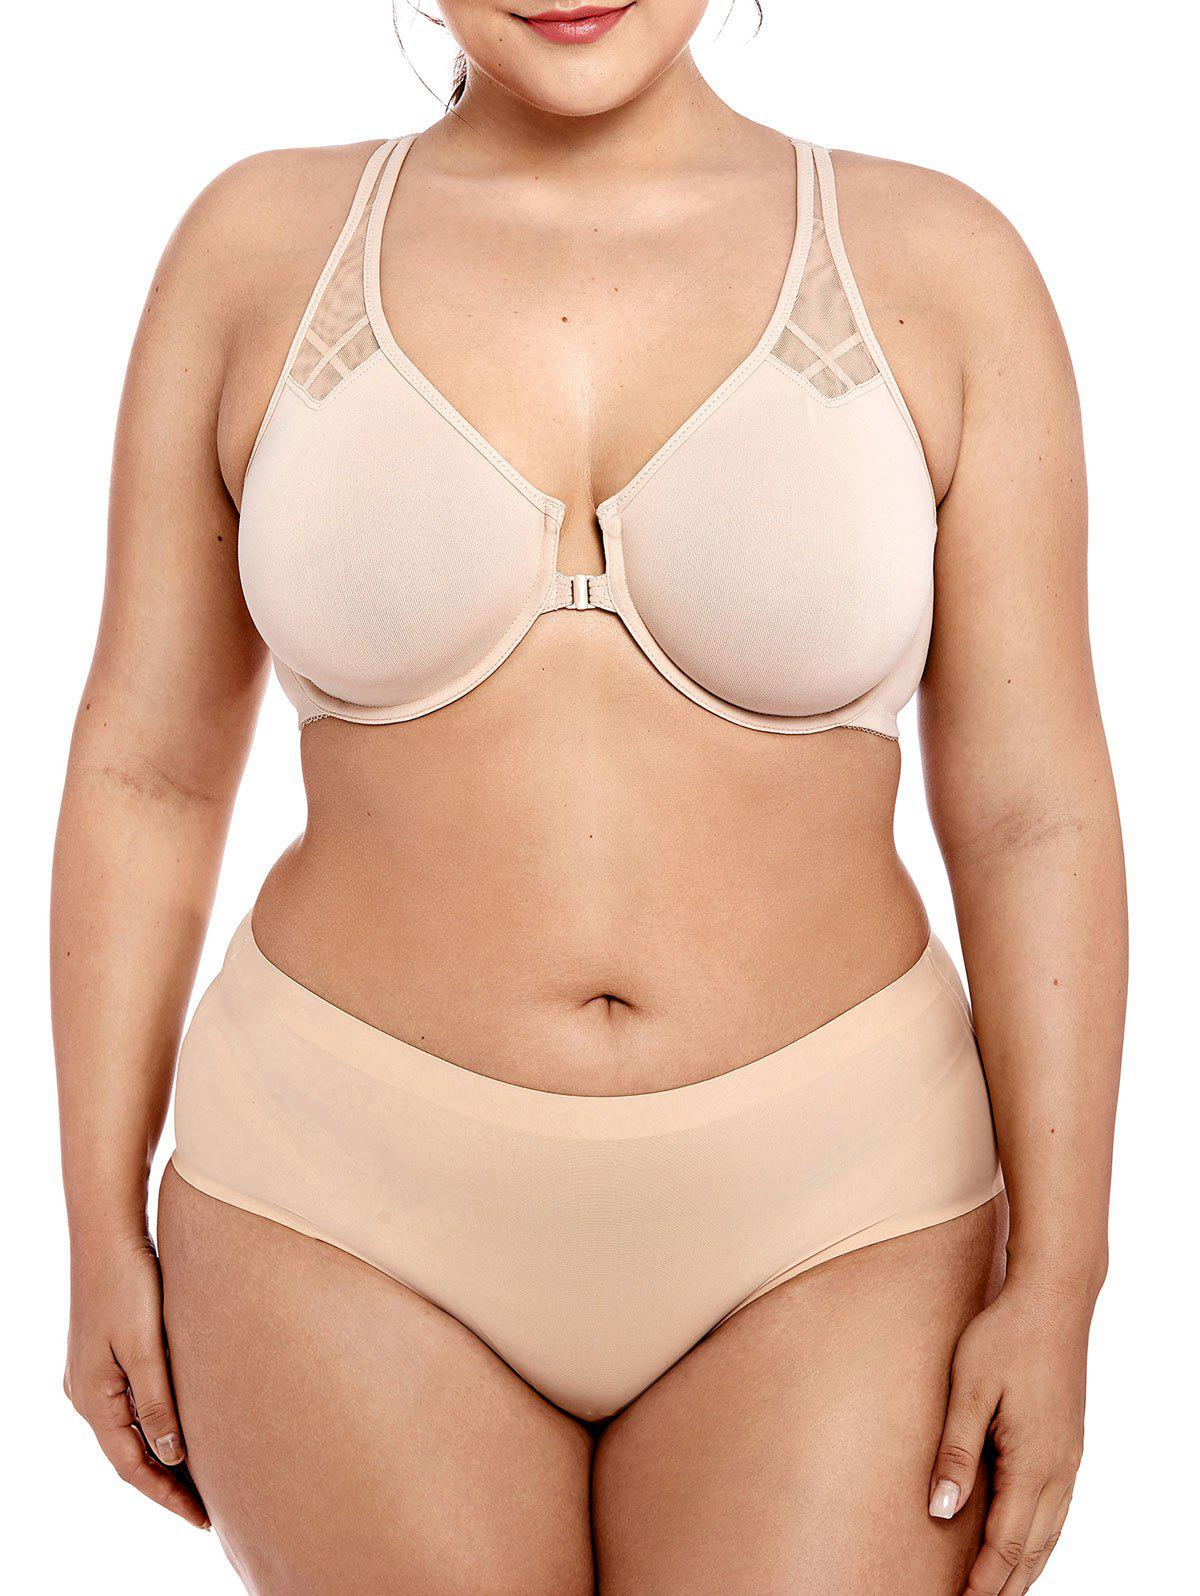 Store Mesh Panel Unlined Plus Size Bra